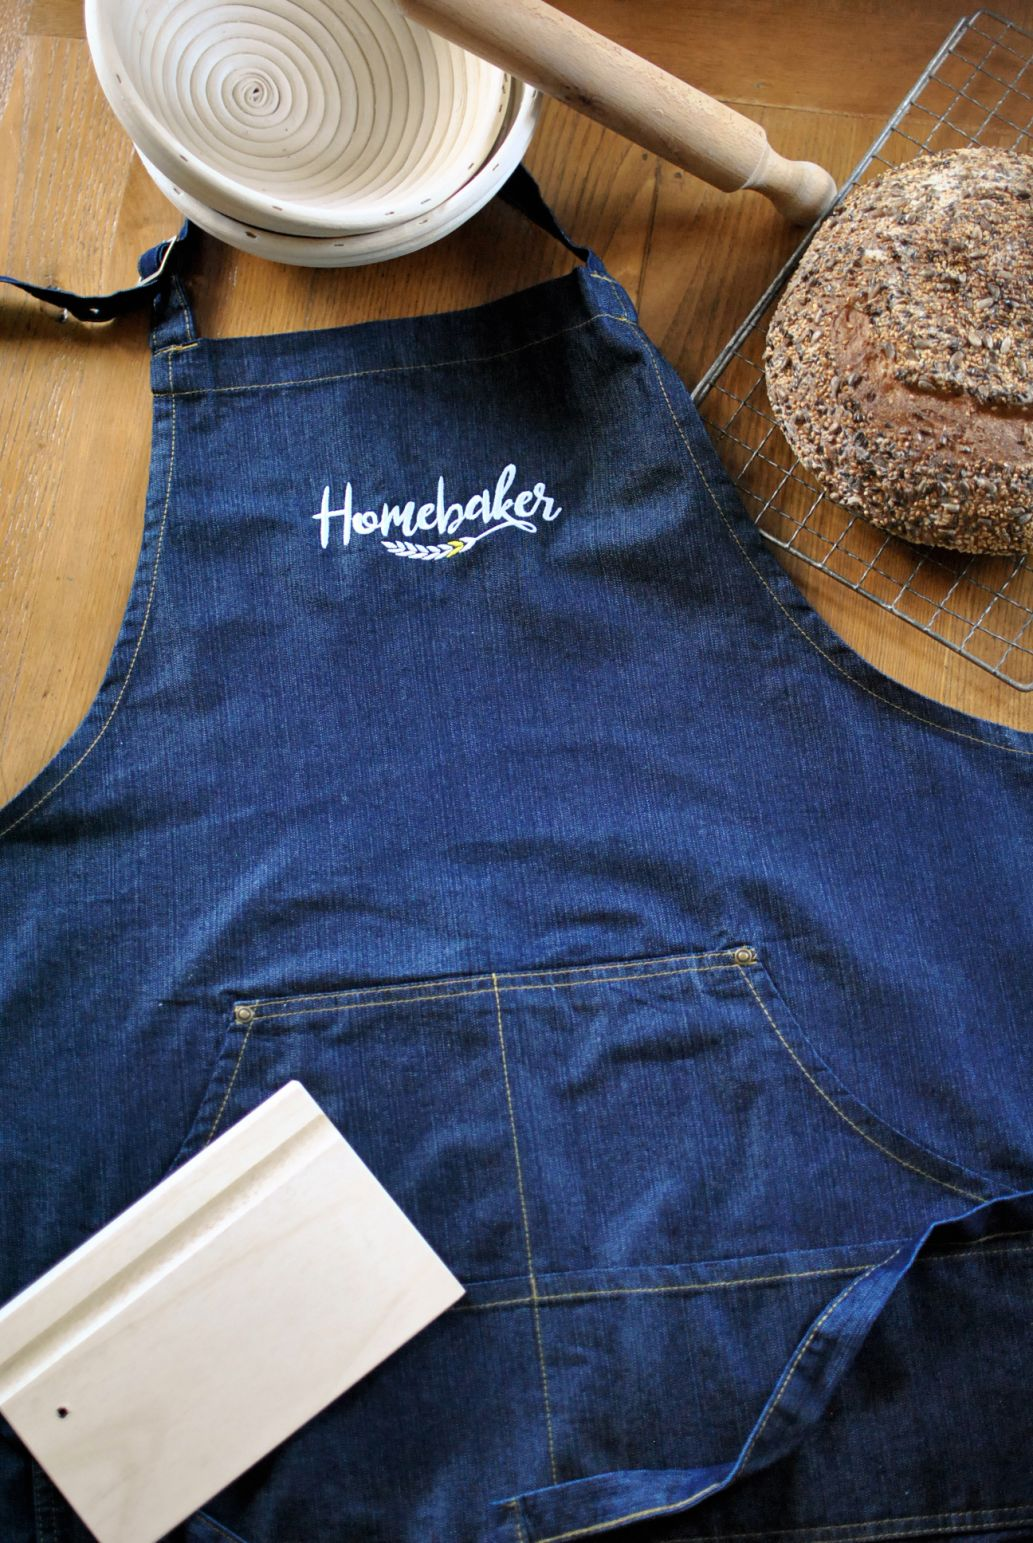 Grembiule Homebaker in Denim  Jeans, donna